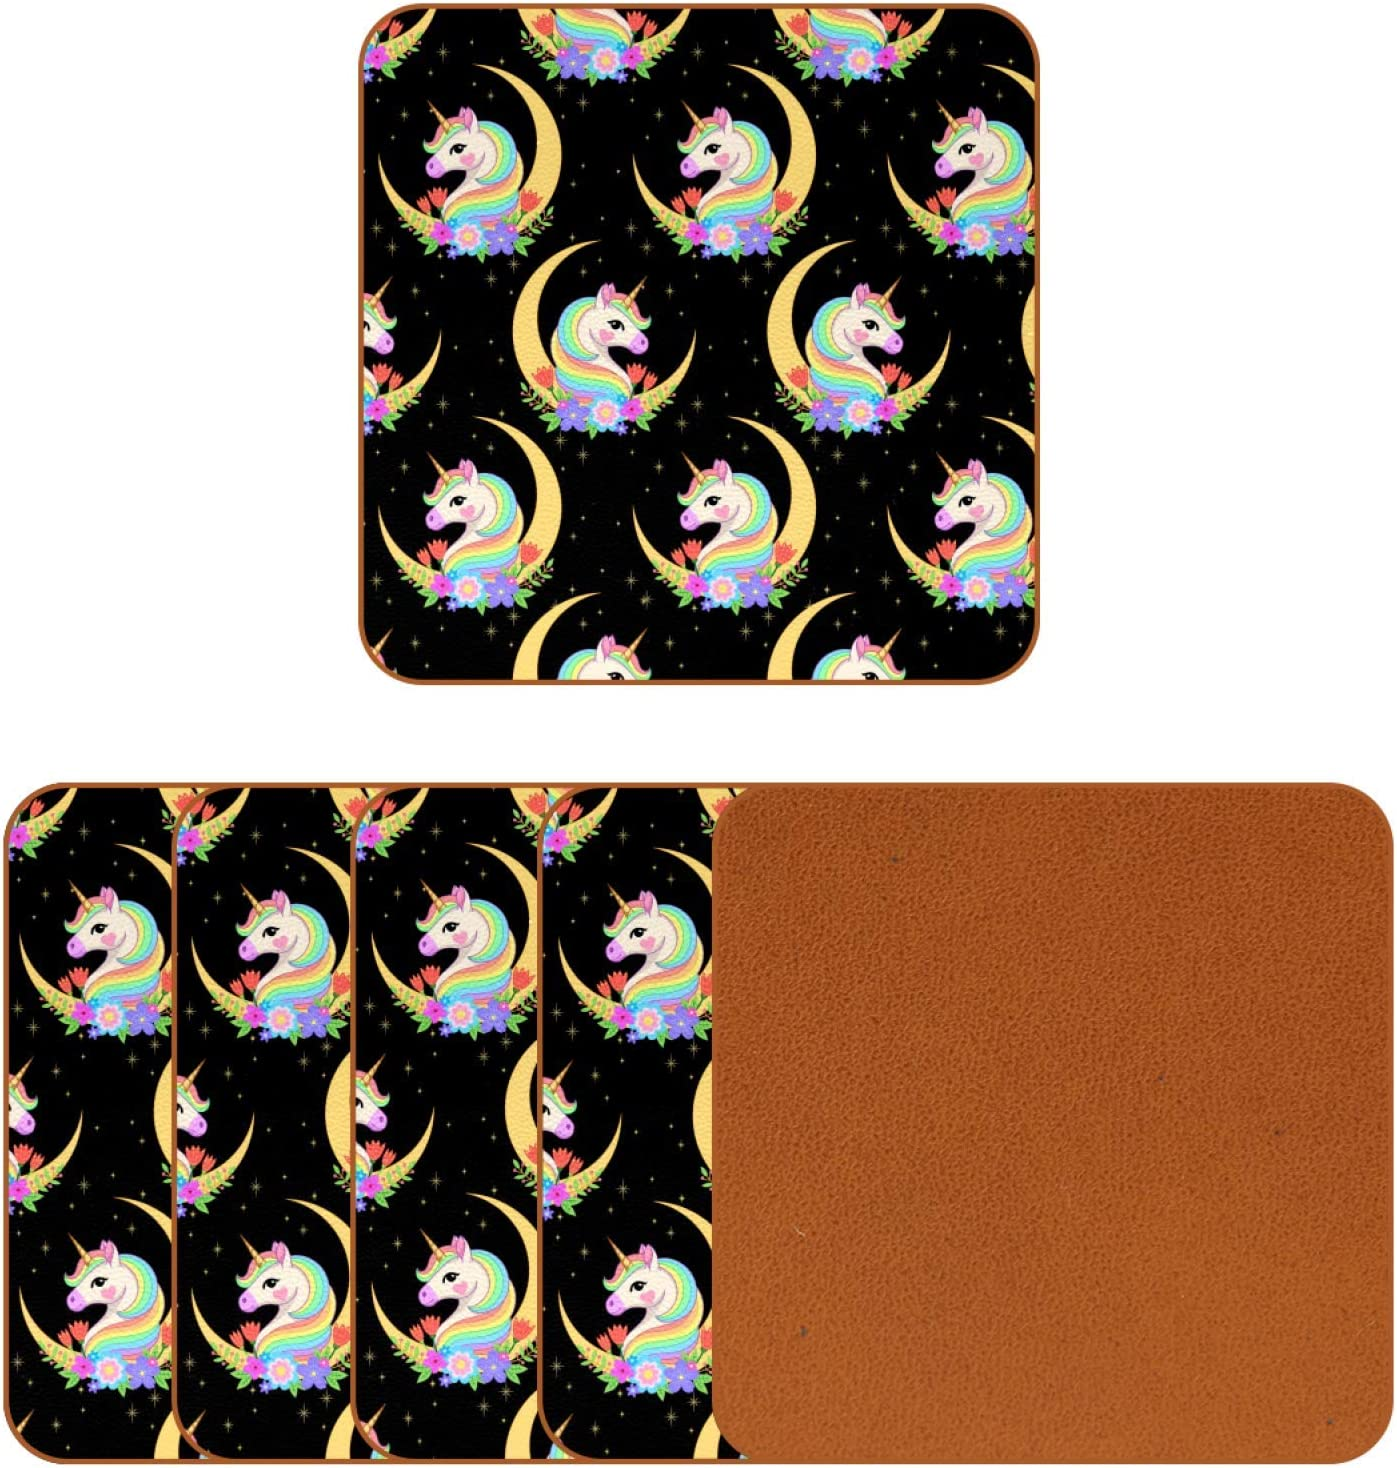 Coasters for Drinks Crescent with Unicorn Head Leather Square Mug Cup Pad Mat for Protect Furniture, Heat Resistant, Kitchen Bar Decor, Set of 6